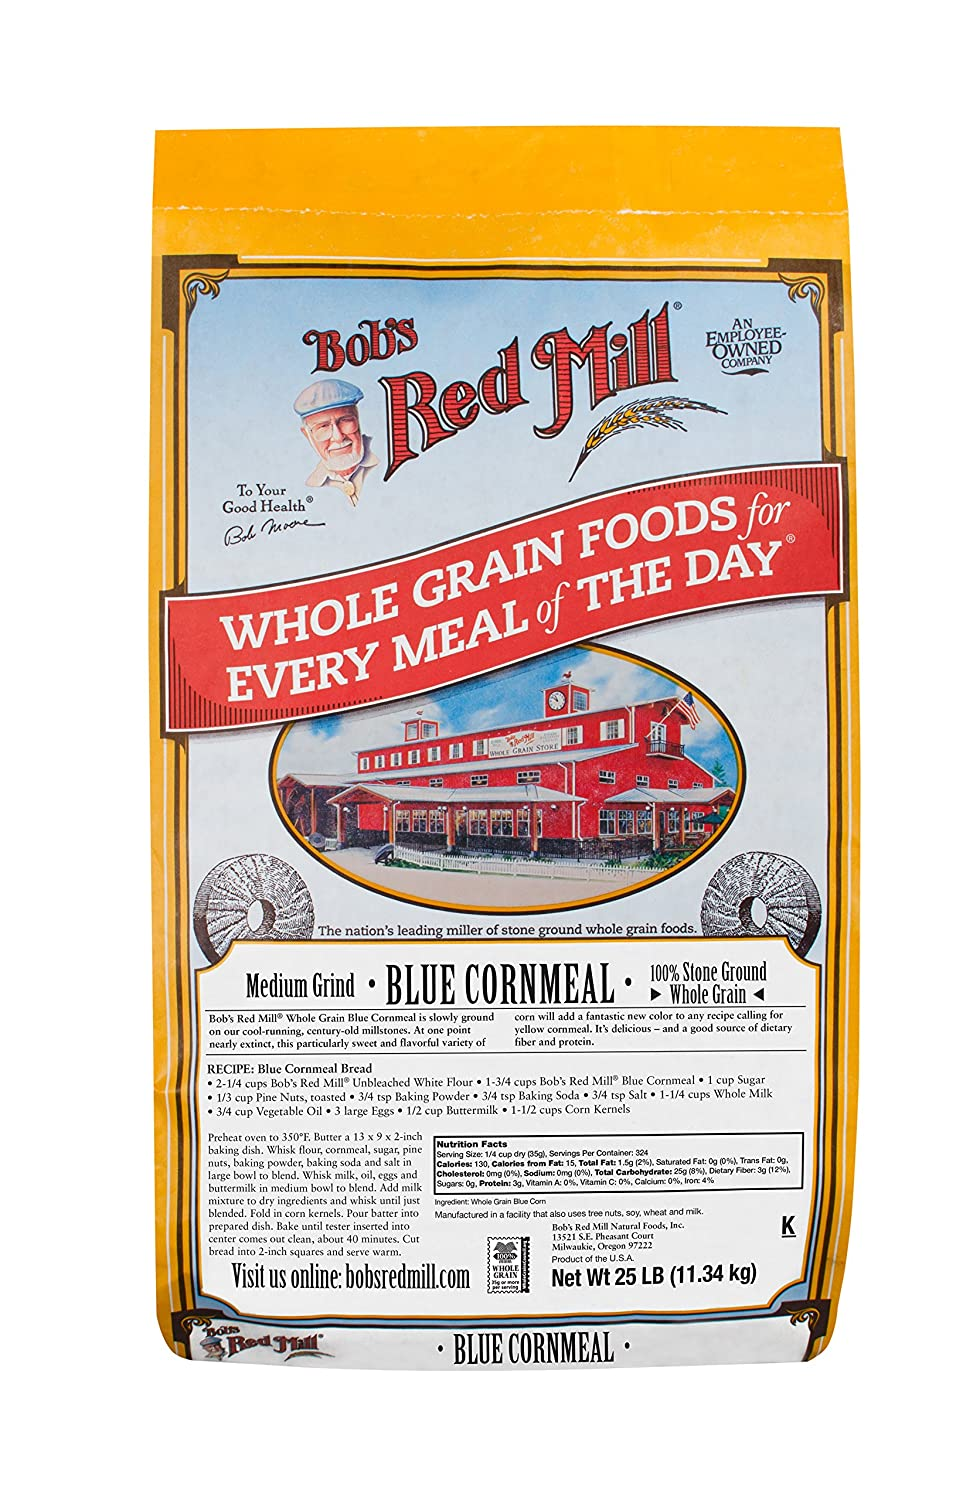 Amazon.com : Bobs Red Mill Blue Cornmeal, 25 Pound : Kitchen Aids : Grocery & Gourmet Food